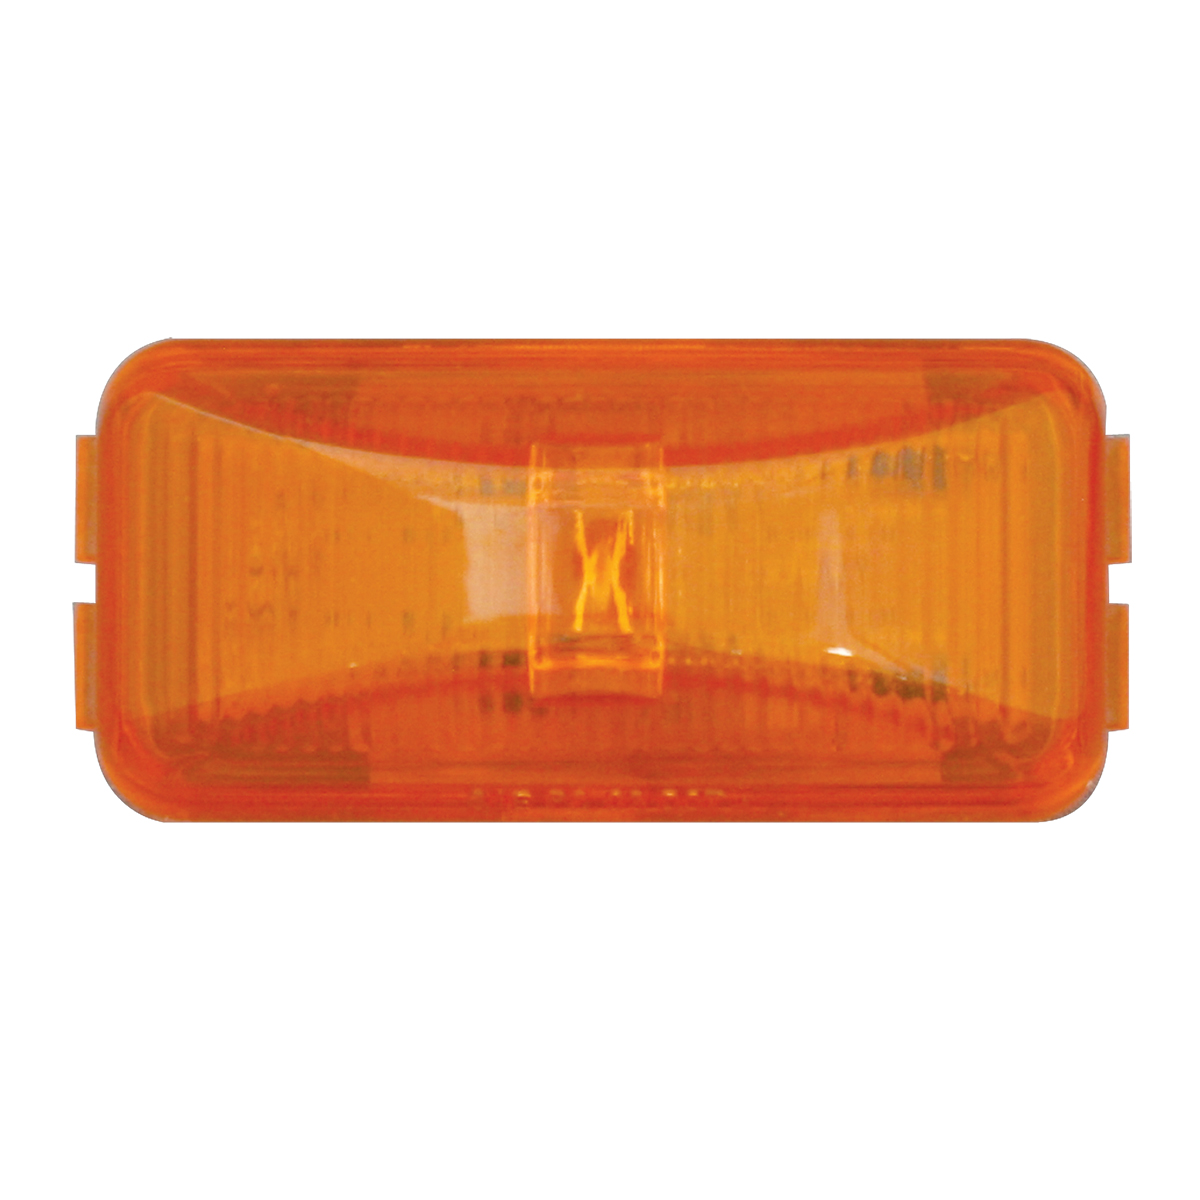 76410 Small Rect Fleet LED Light in Amber/Amber